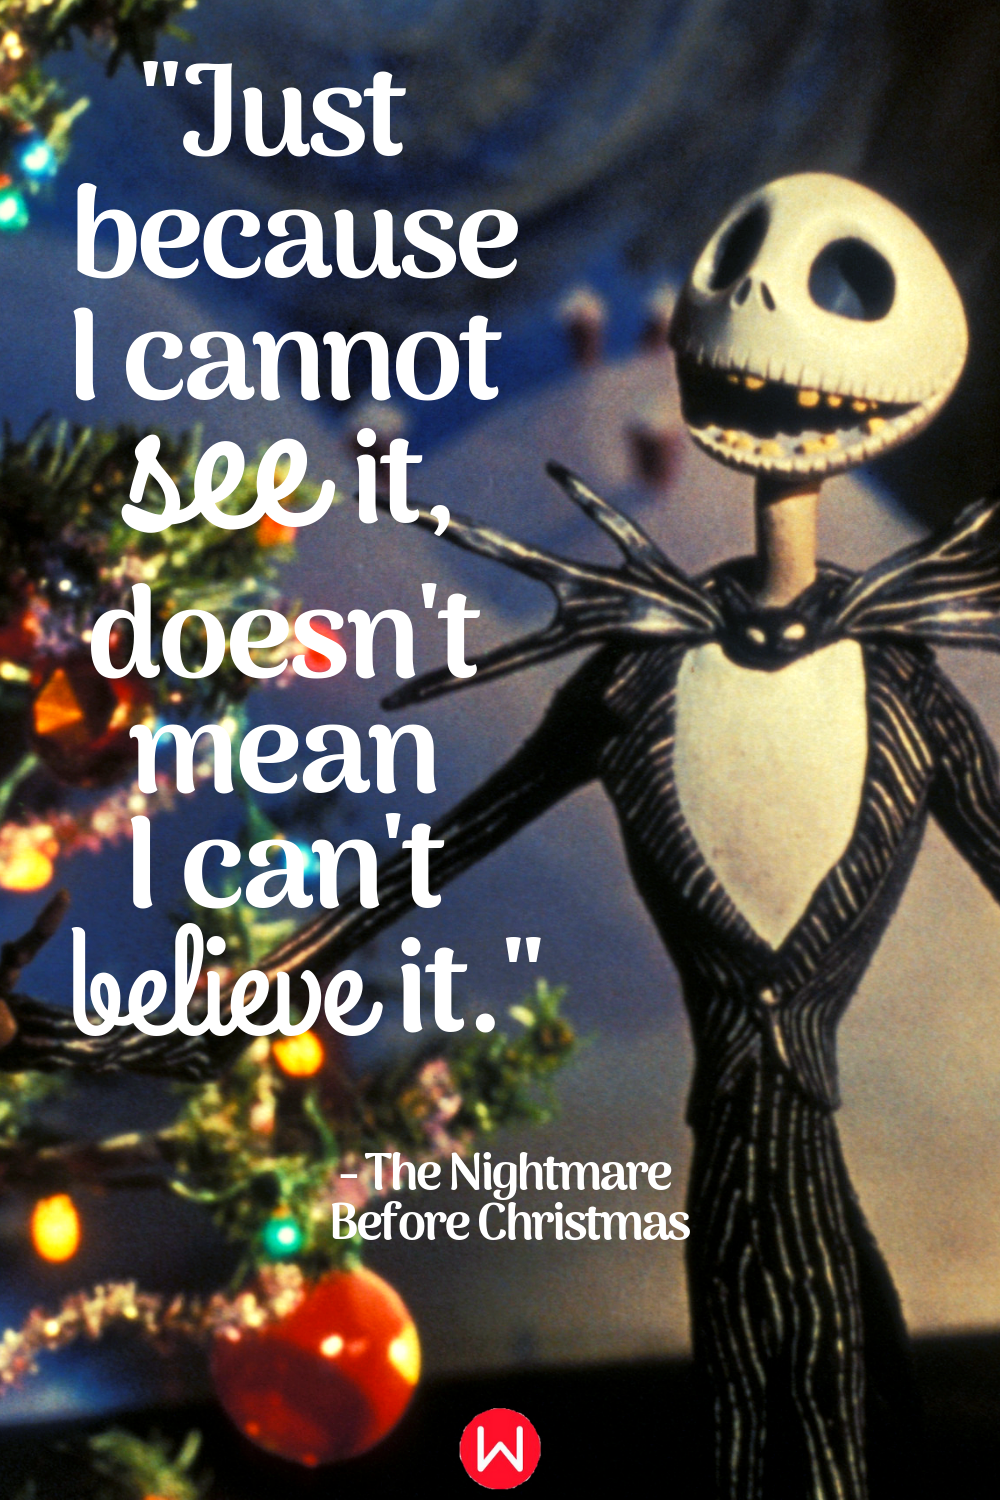 movies, The Nightmare Before Christmas, quote, Disney